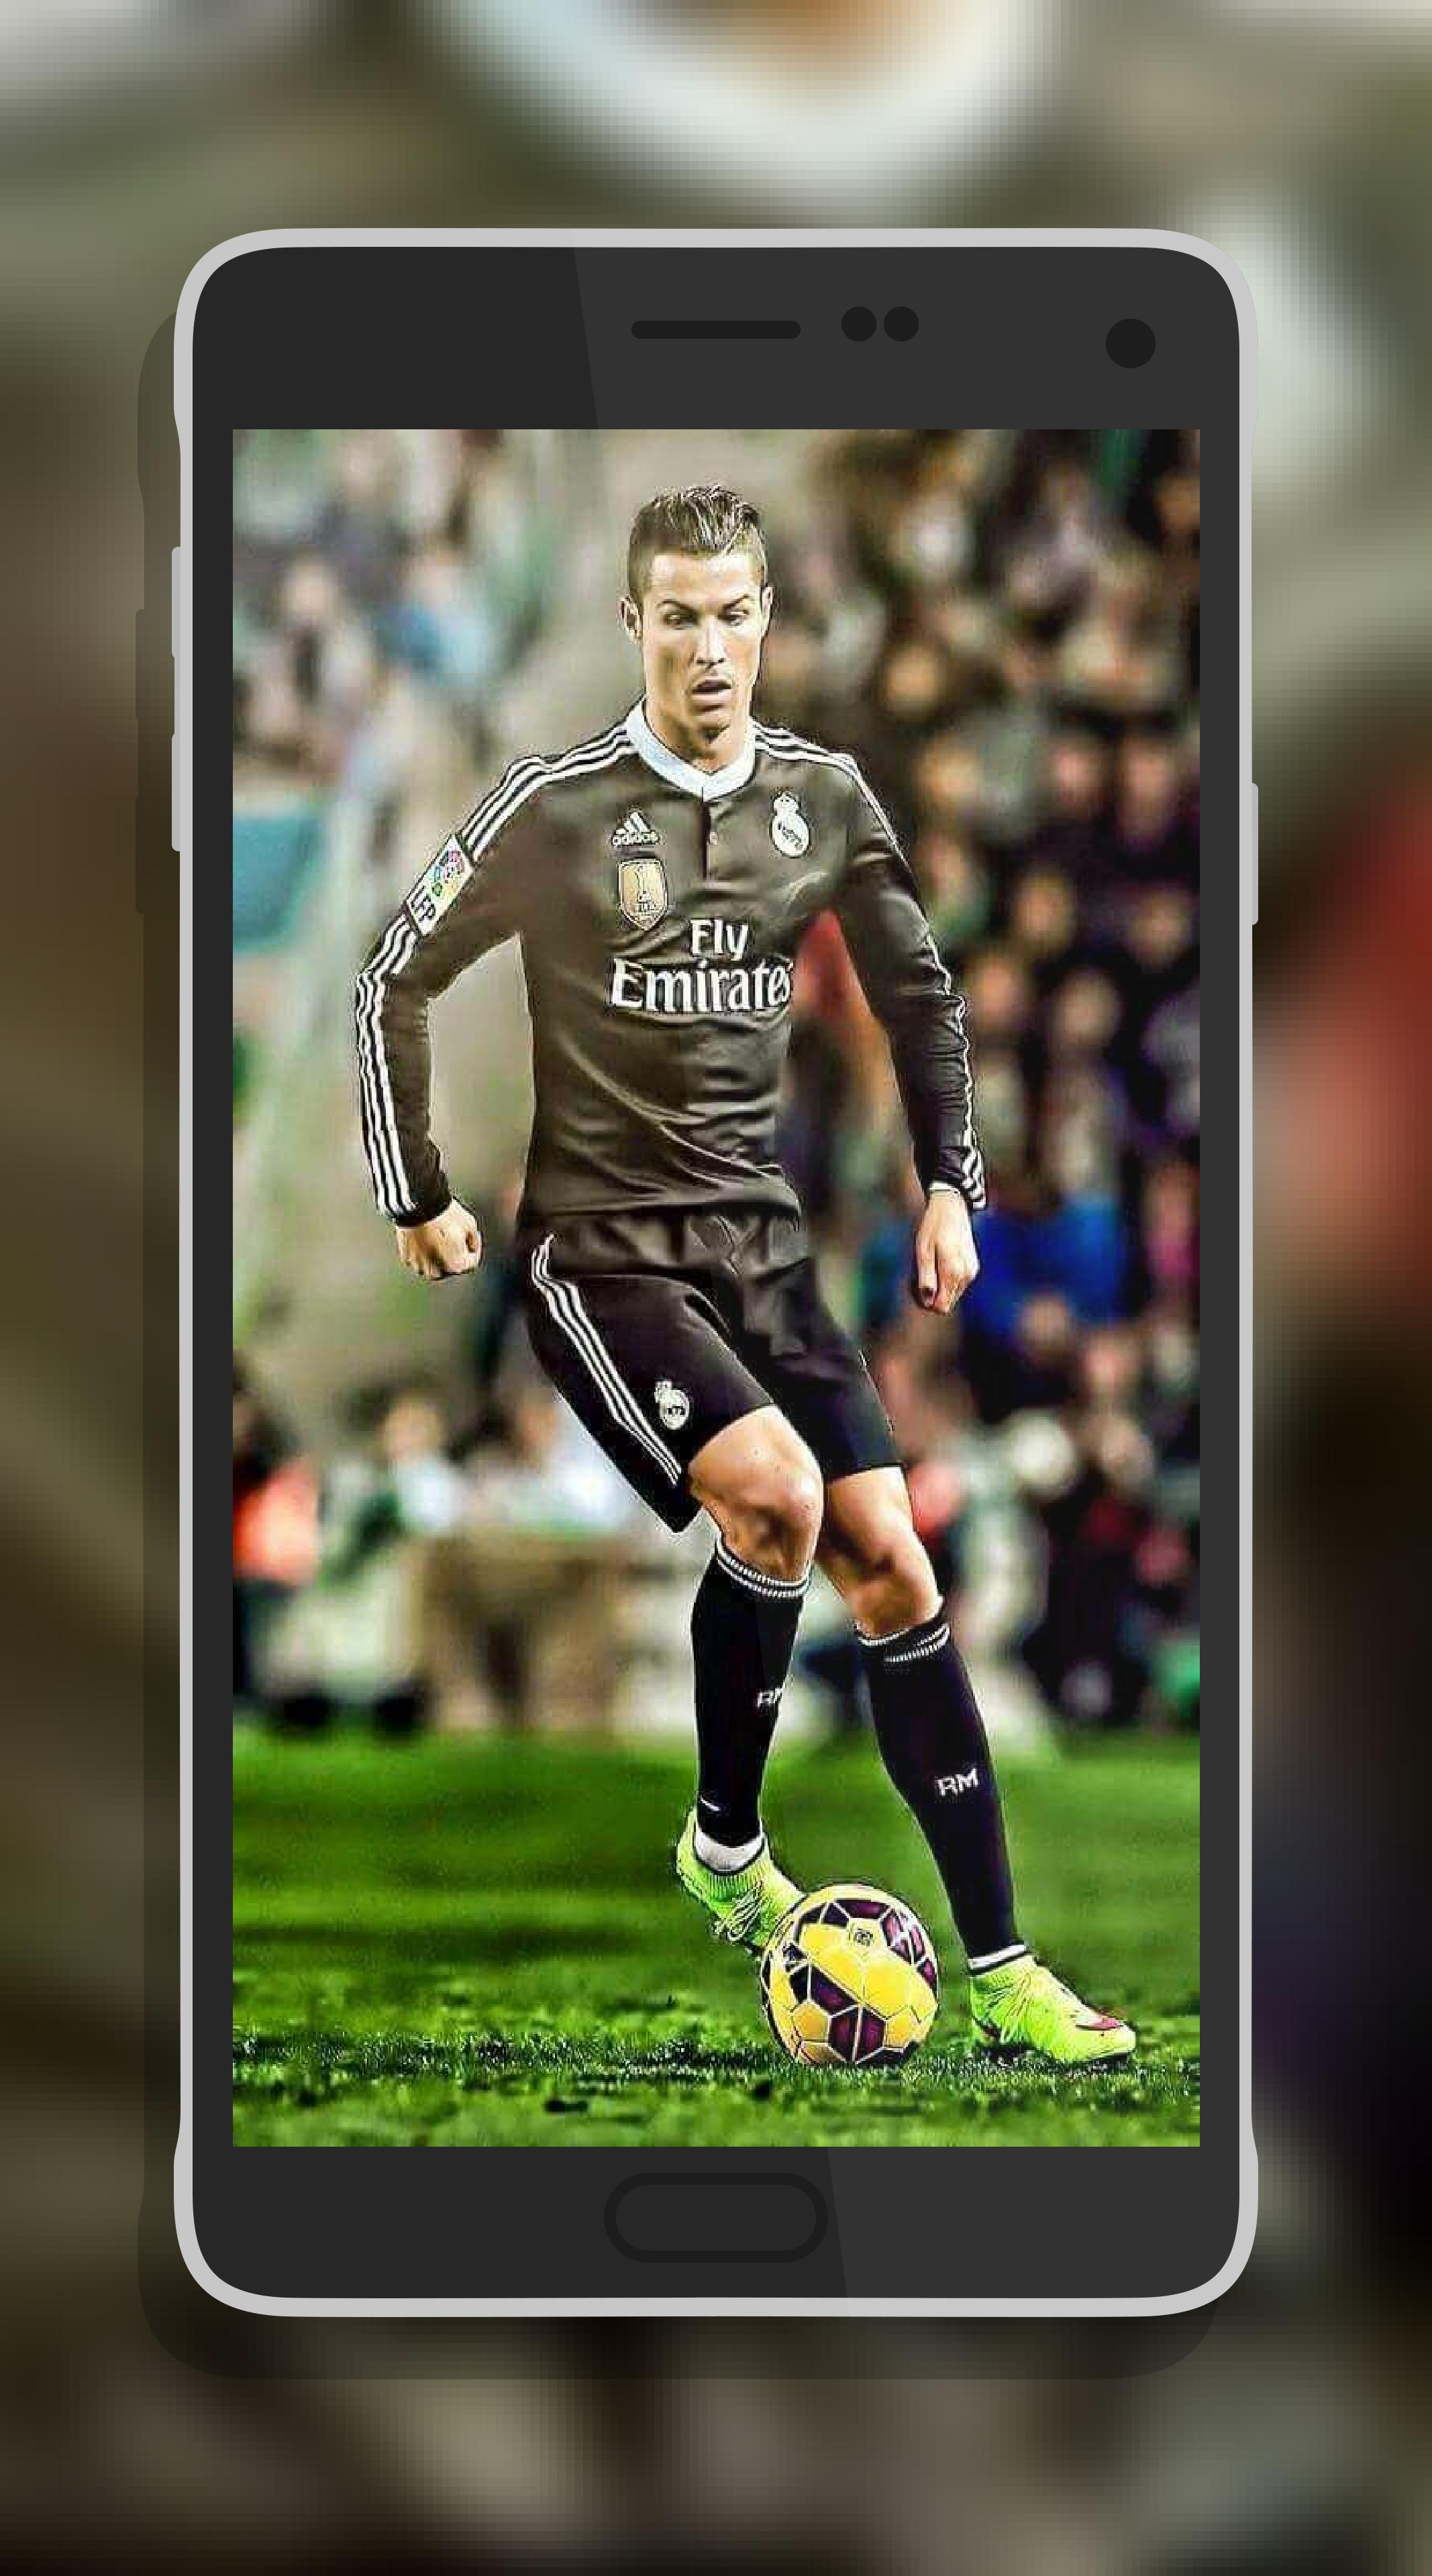 Cristiano Ronaldo Lock Screen Wallpapers Hd For Android